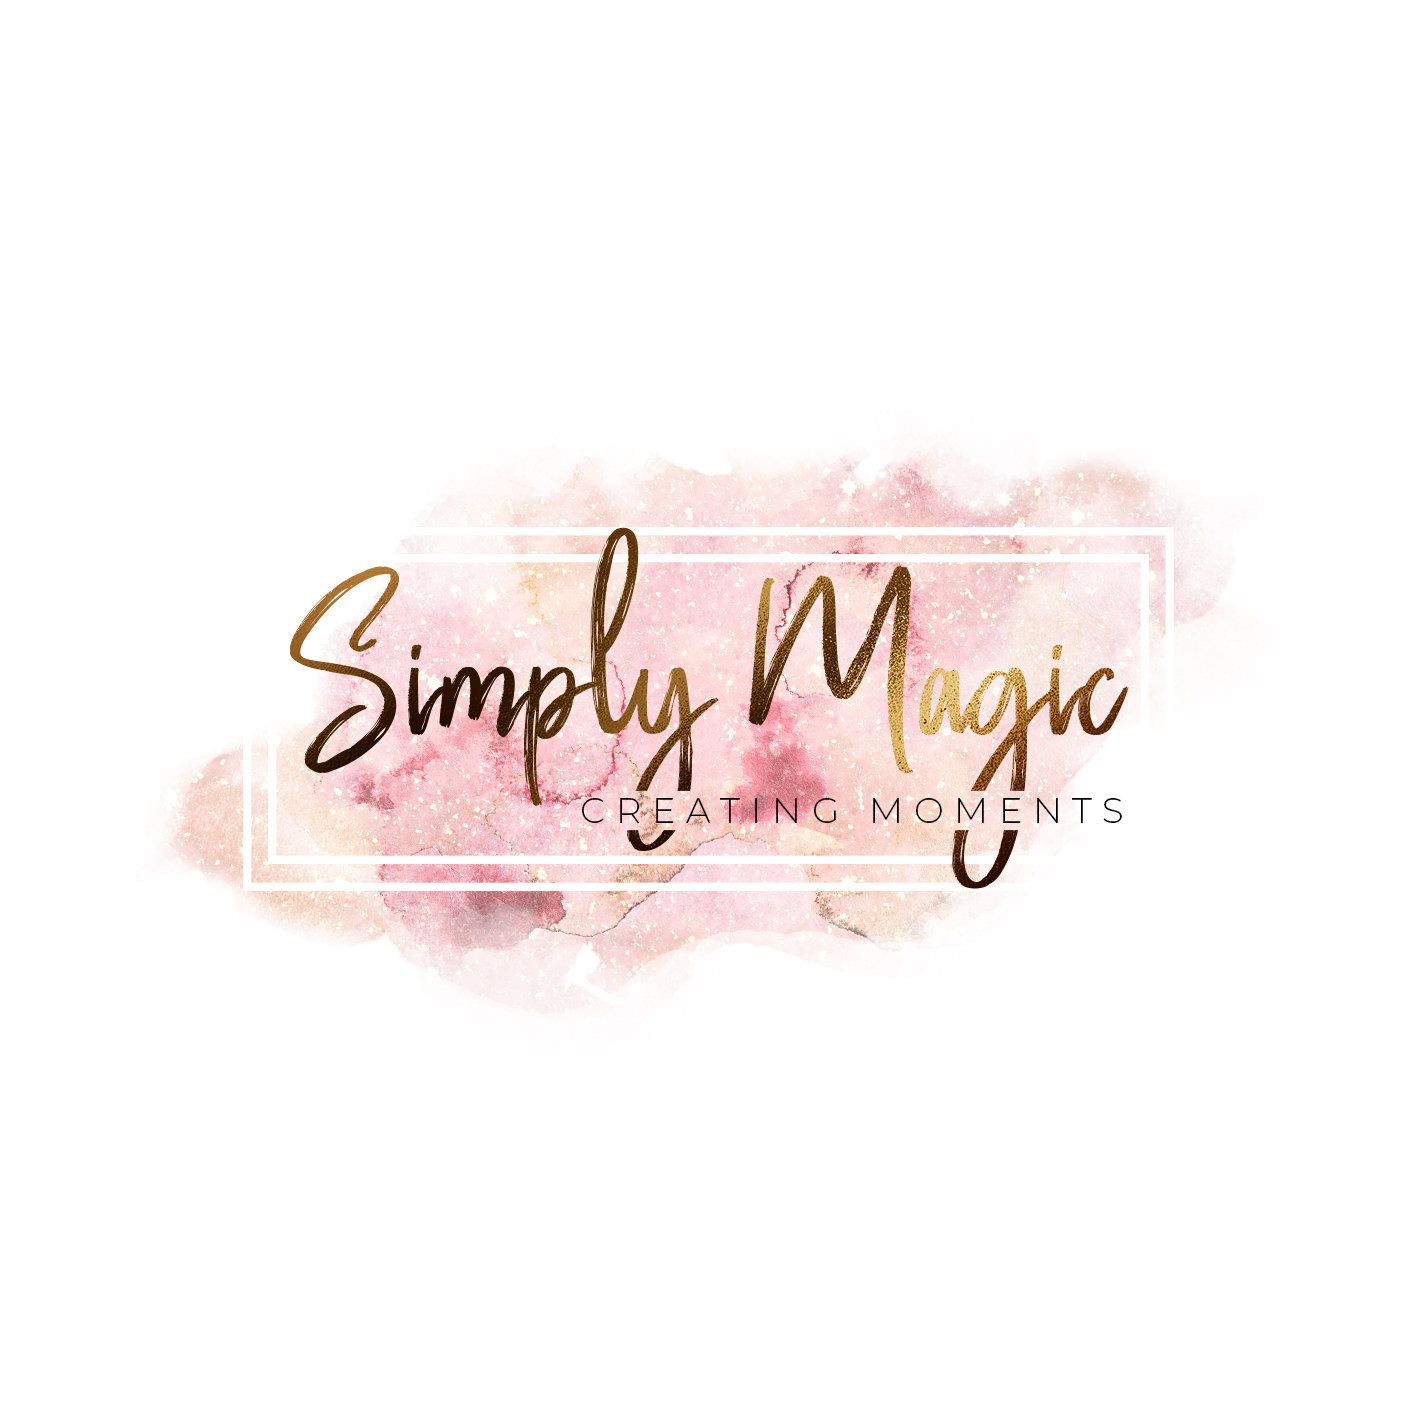 Pretty logo design, subtle beauty, small business logo